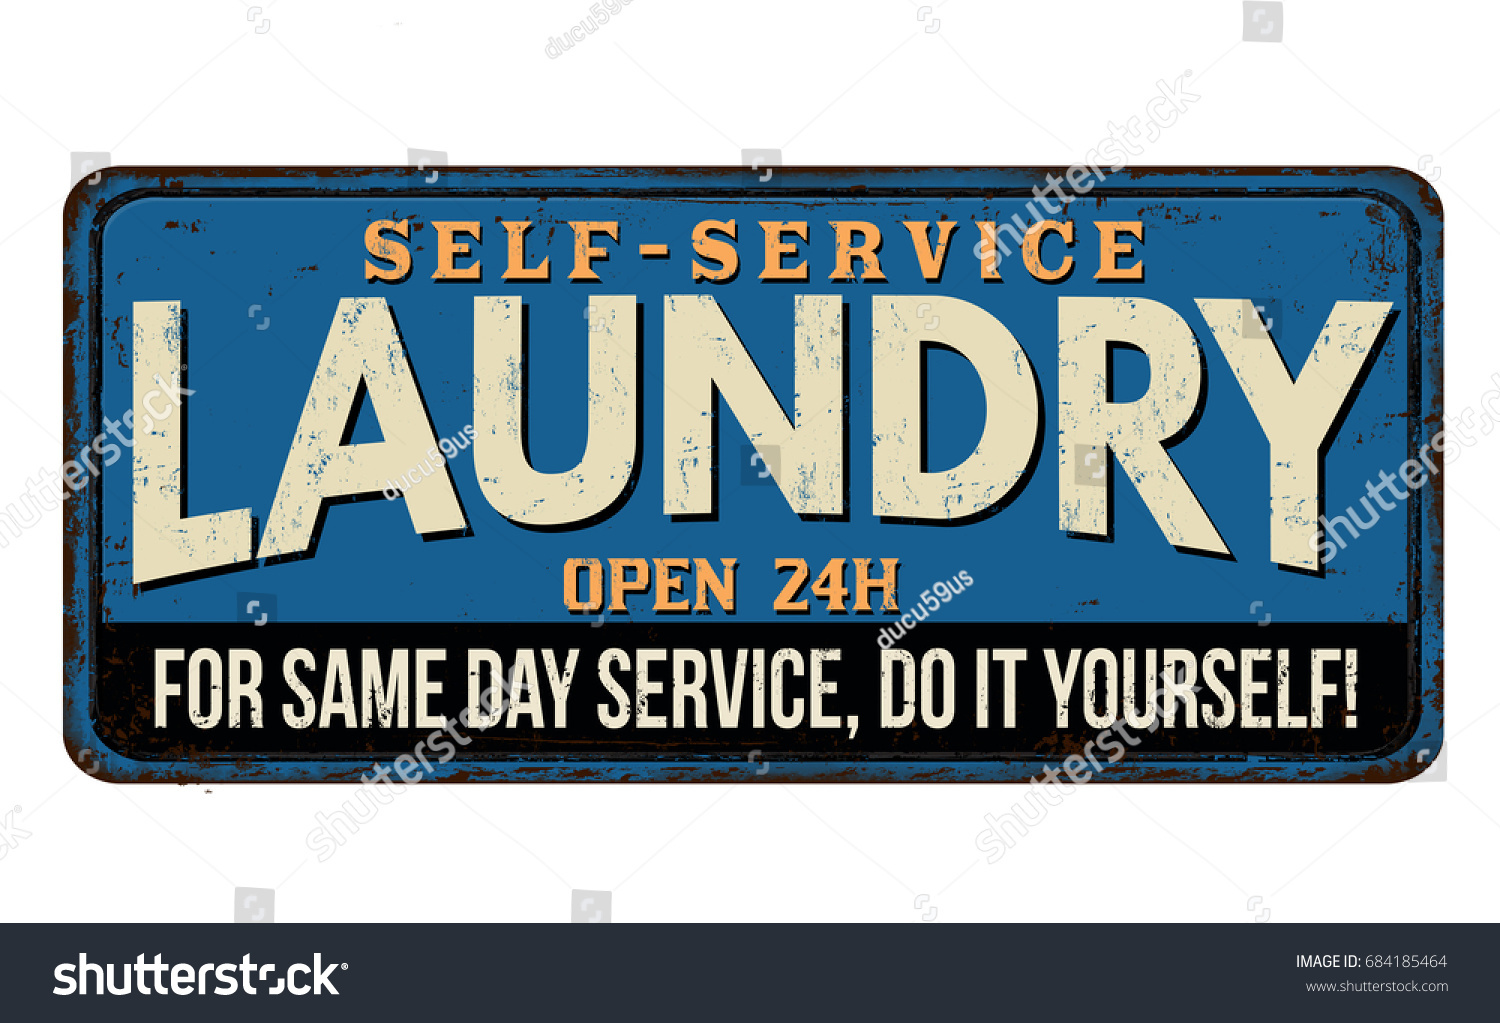 Metal Laundry Sign Laundry Funny Vintage Rusty Metal Sign Stock Vector 684185464